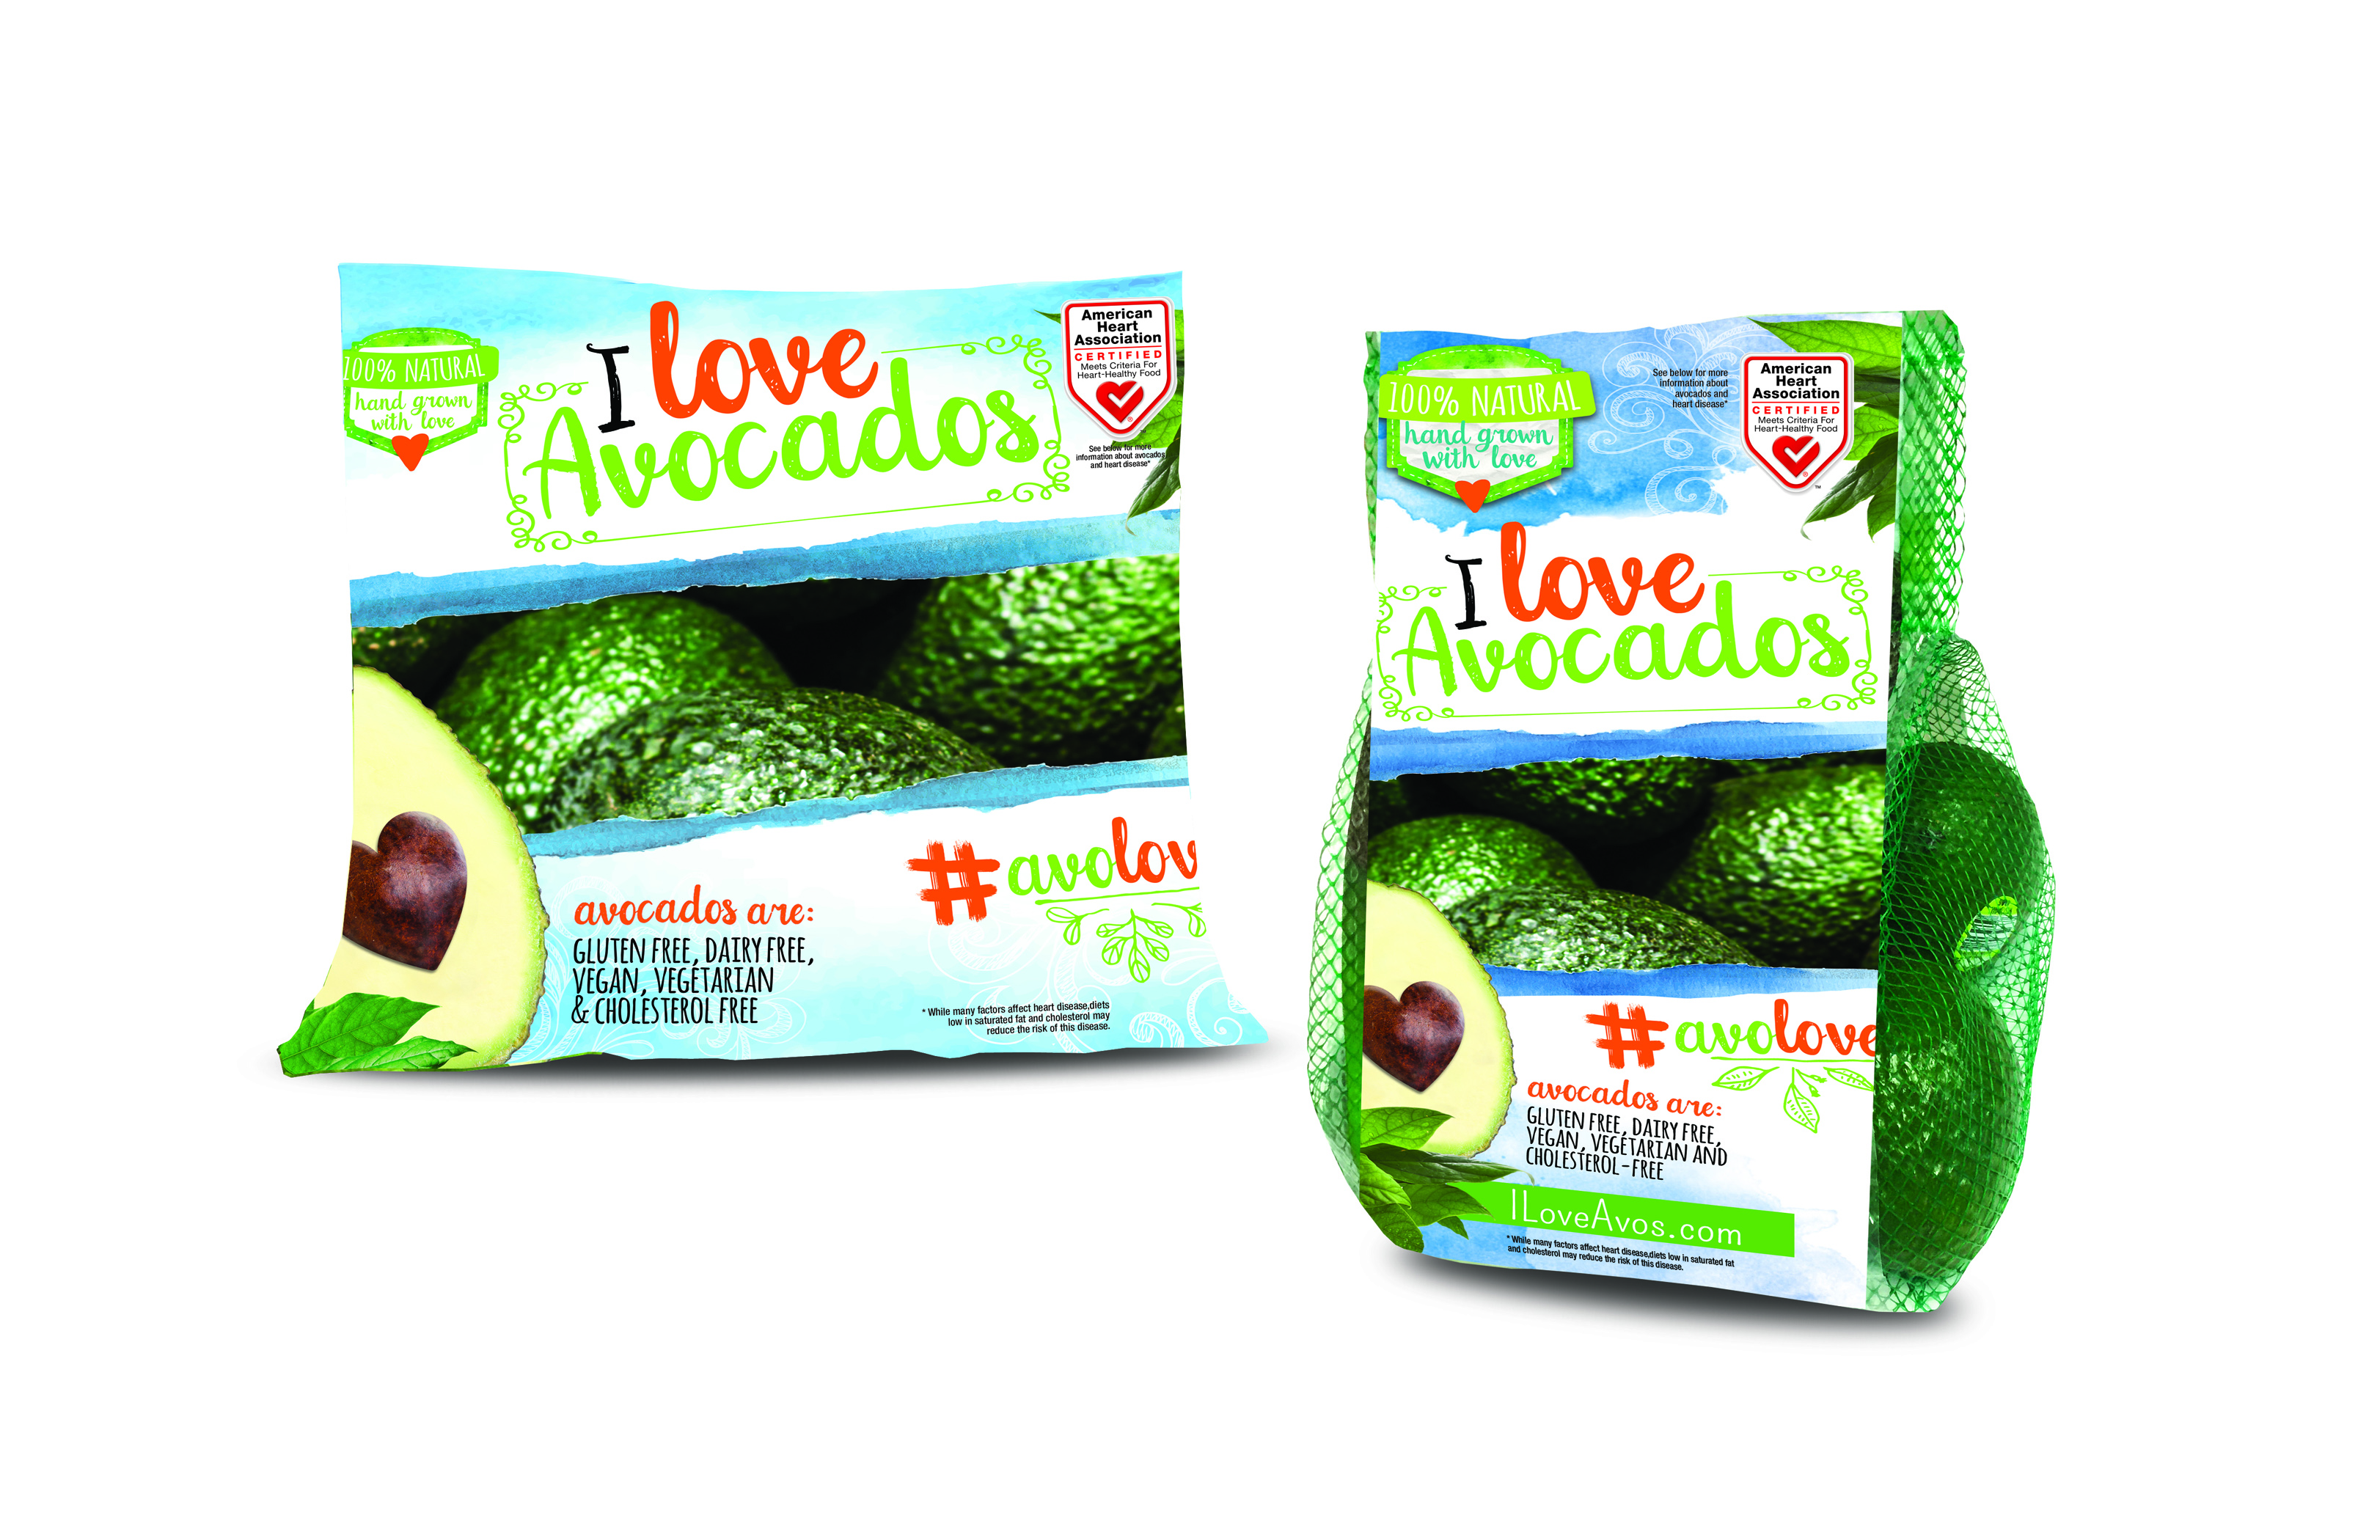 I Love Avocados Brand Earns Heart-Check Certification